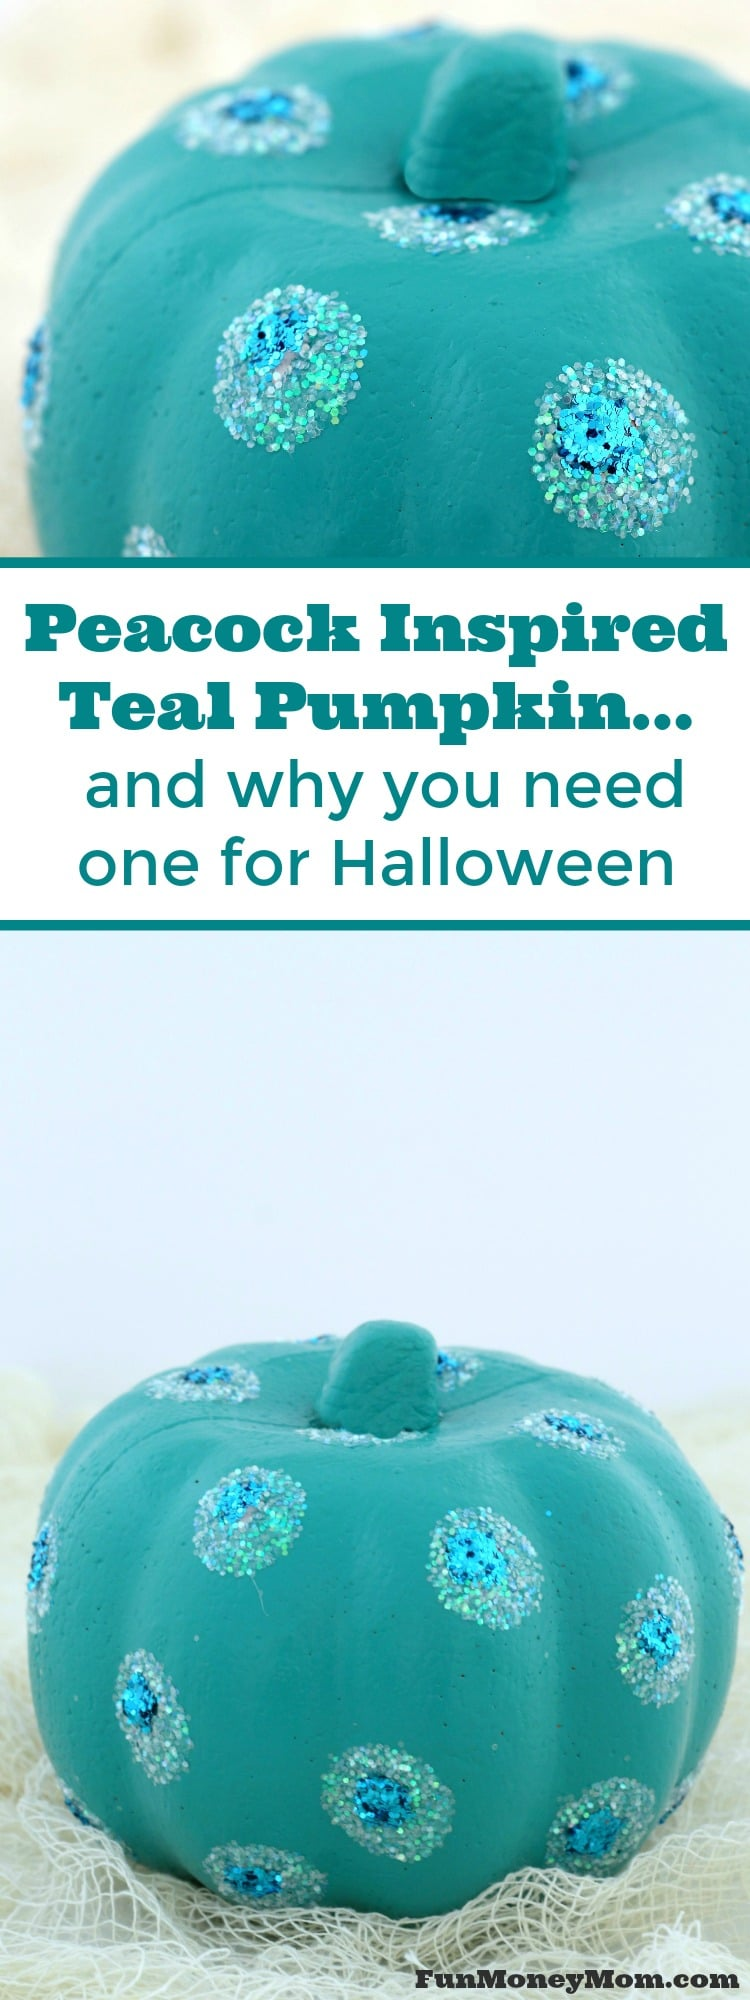 Decorating pumpkins can be fun, but they can serve an important purpose too. Find out how you can help children by making a teal pumpkin for your porch on Halloween.